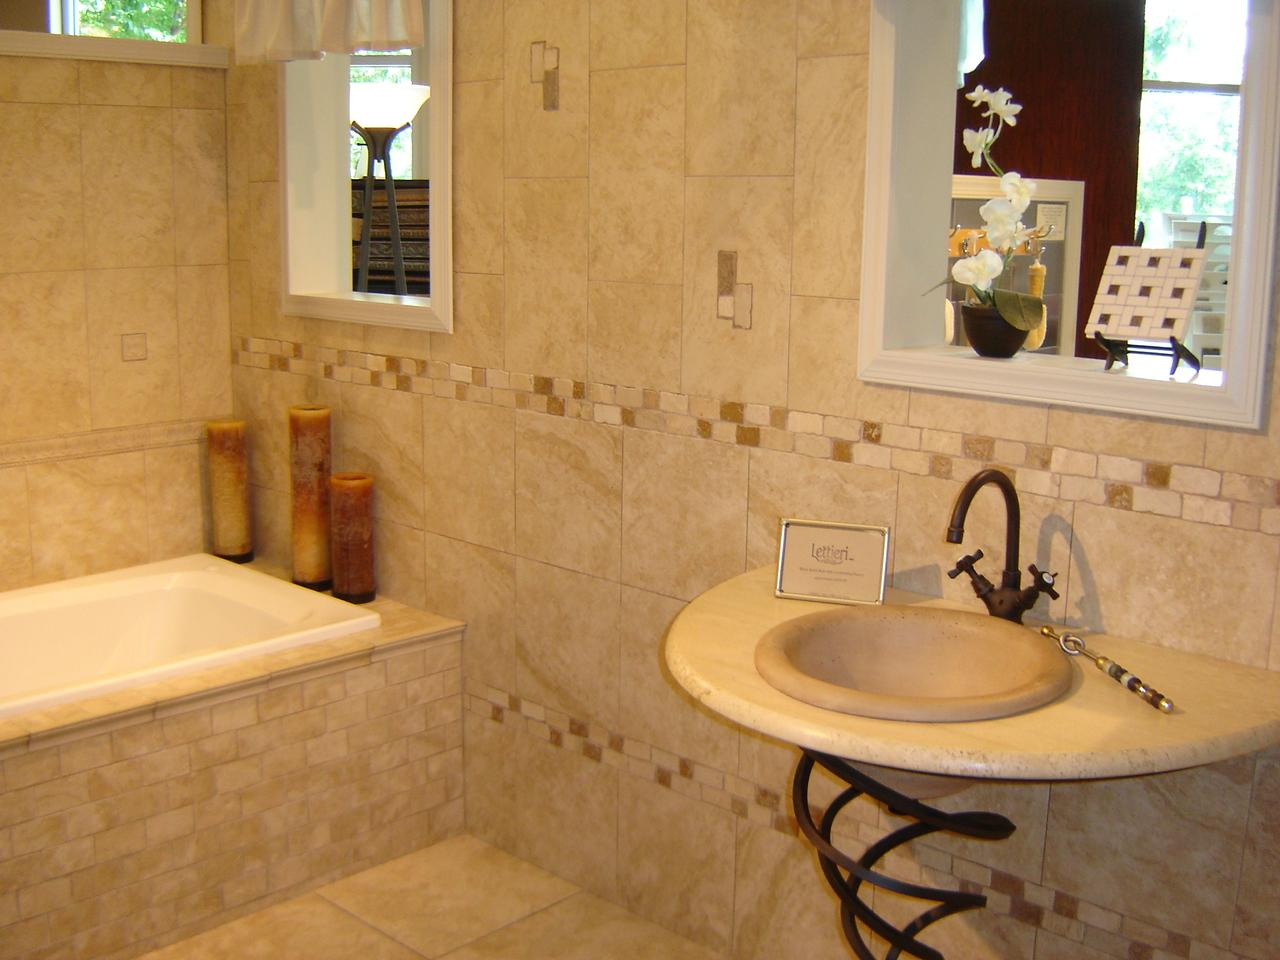 bathroom tiles designs pictures photo - 10